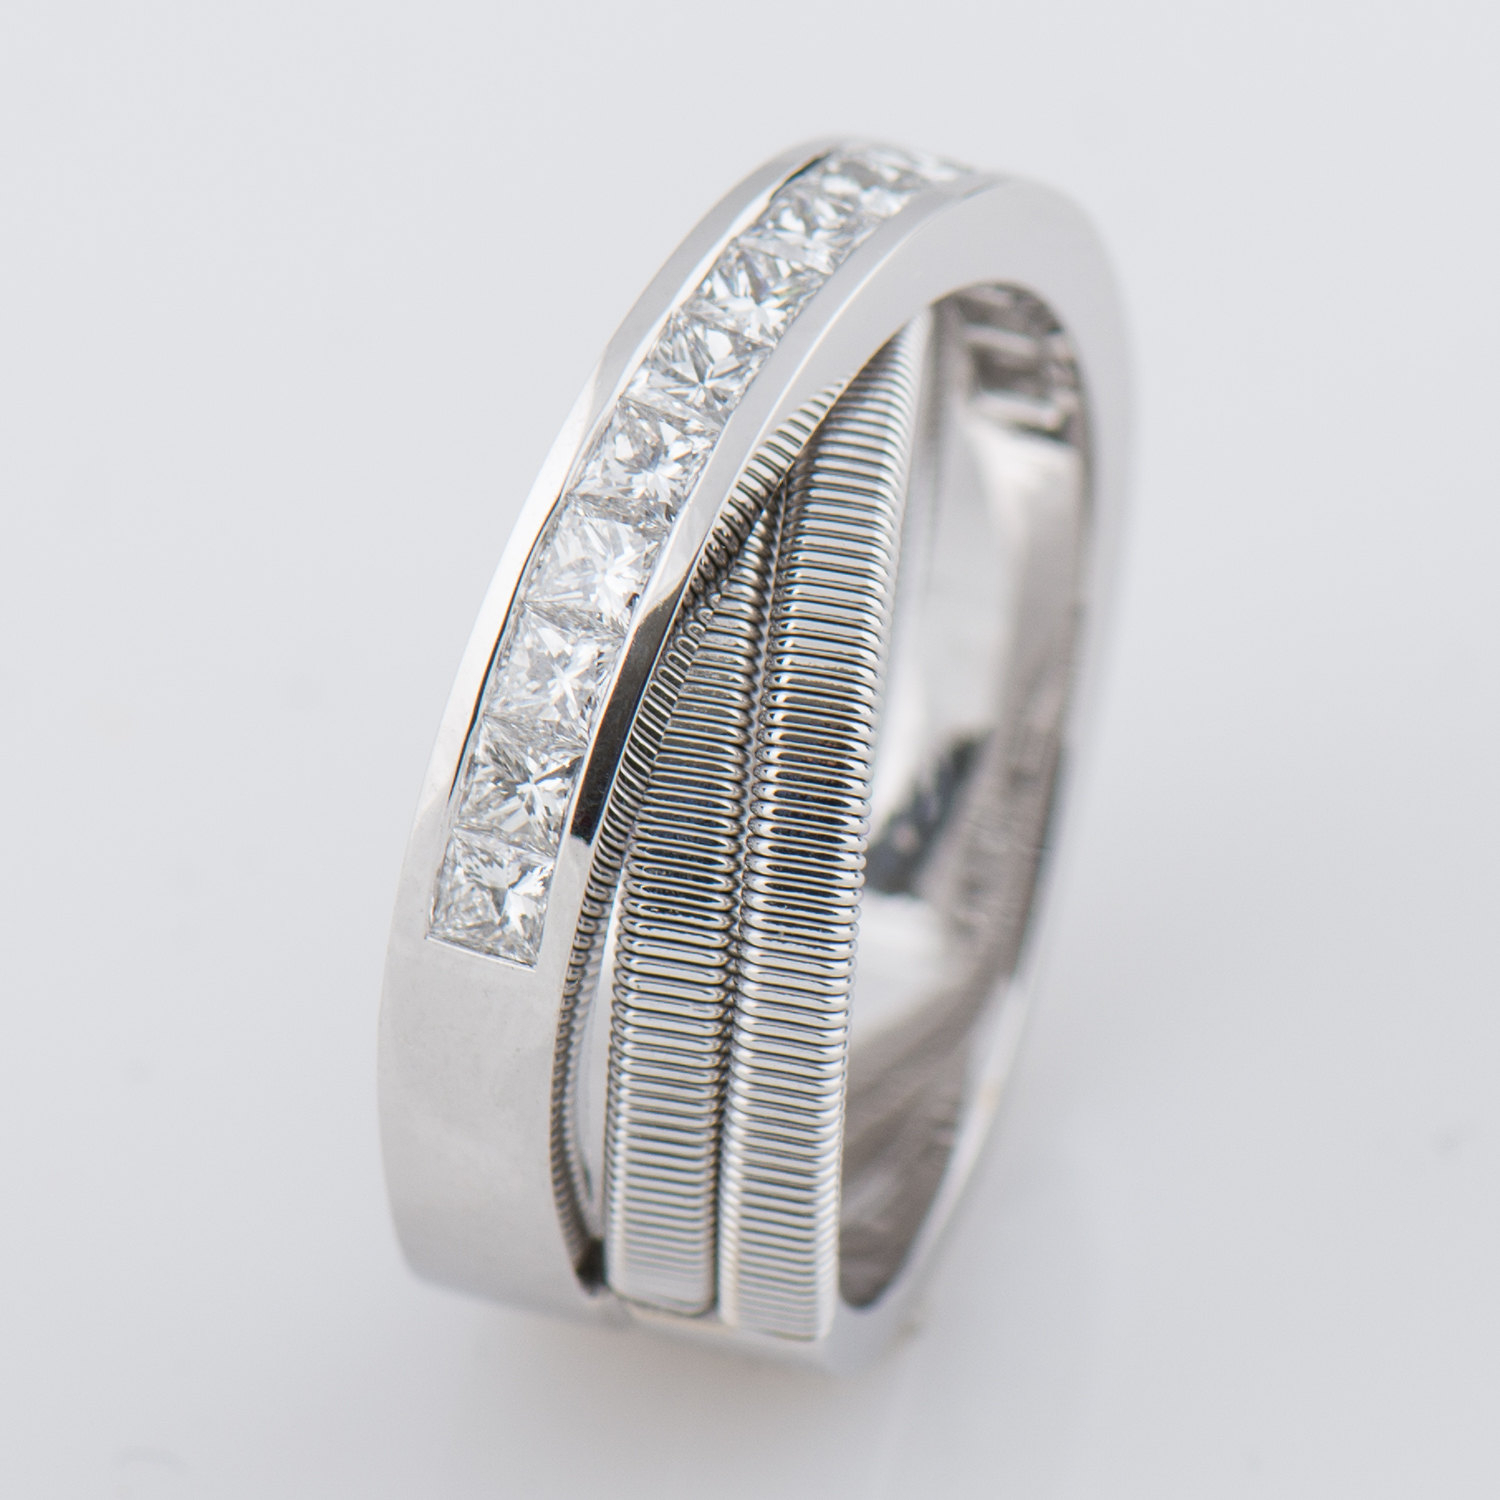 Strands 6 – Half Eternity Ring, Wedding Ring, 18K White Gold Ring, Princess  Diamonds Ring, Cross Ring, Anniversary Ring, Criss Cross, Coil With Regard To Newest Princess Cut Diamond Criss Cross Anniversary Bands In White Gold (View 20 of 25)